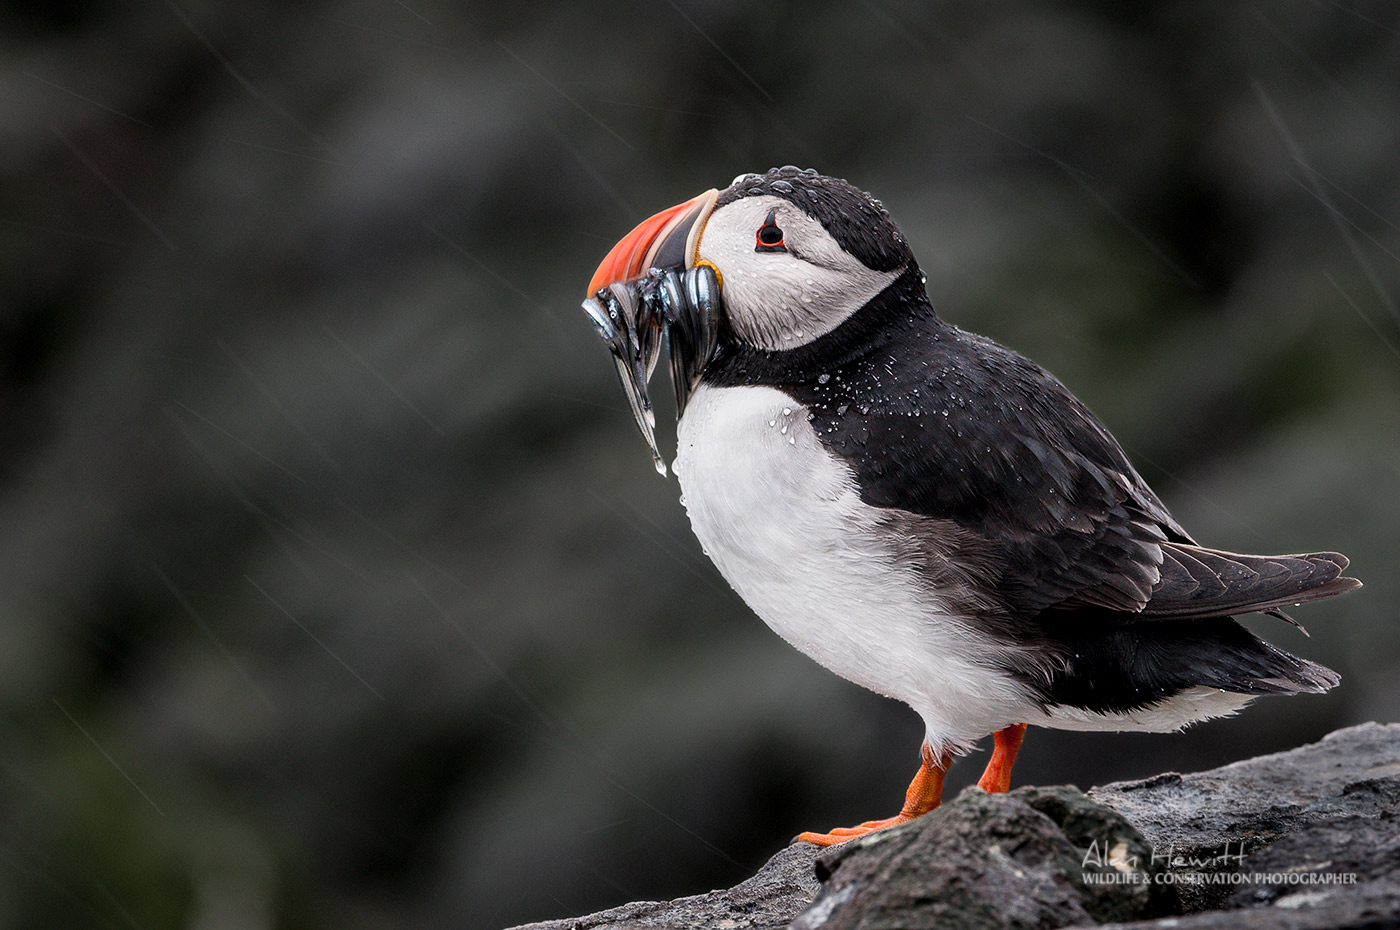 Nature TTL - Farne Islands Puffin Photography: The Galapagos of the North Alan Hewitt Photography